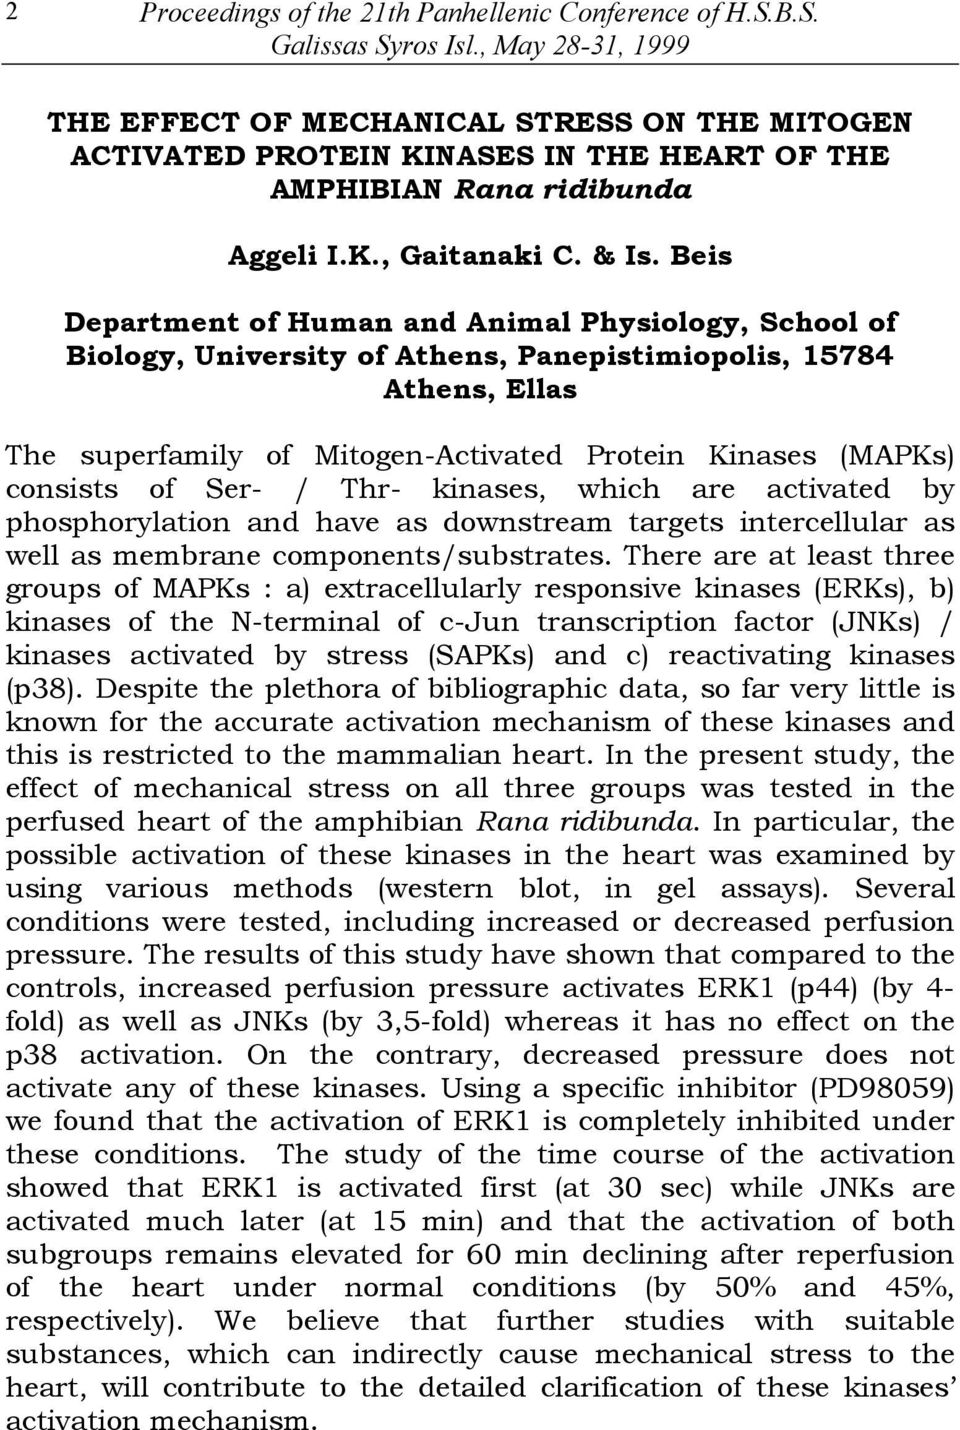 Beis Department of Human and Animal Physiology, School of Biology, University of Athens, Panepistimiopolis, 15784 Athens, Ellas The superfamily of Mitogen-Activated Protein Kinases (MAPKs) consists